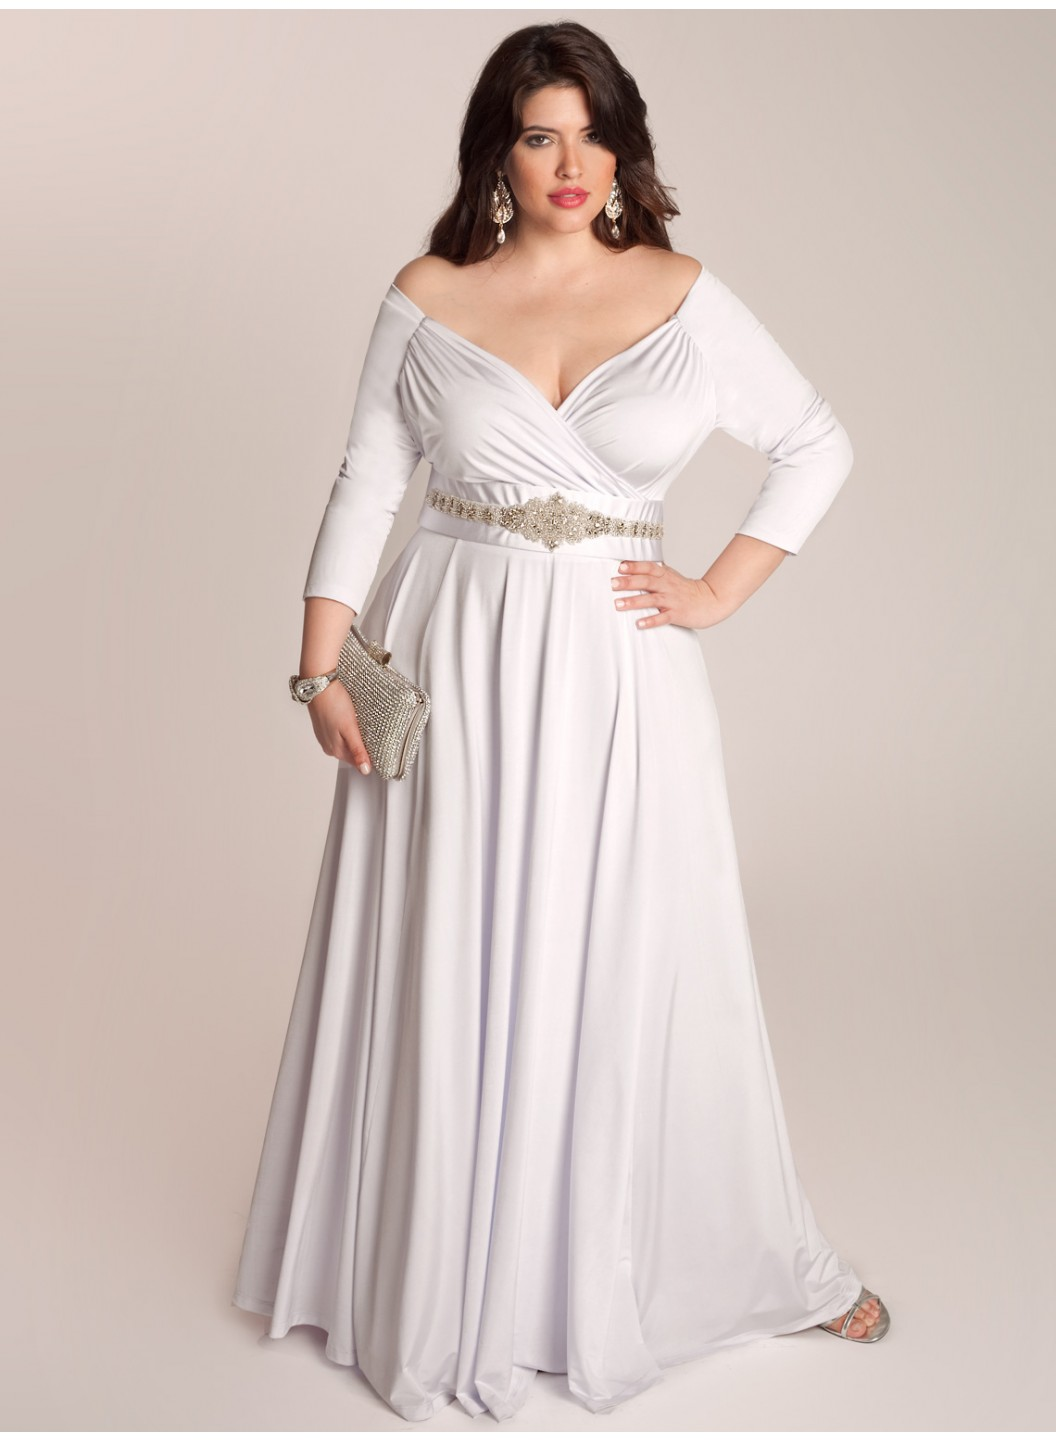 Top 10 Plus Size Wedding Dress Designers By Pretty Pear Bride